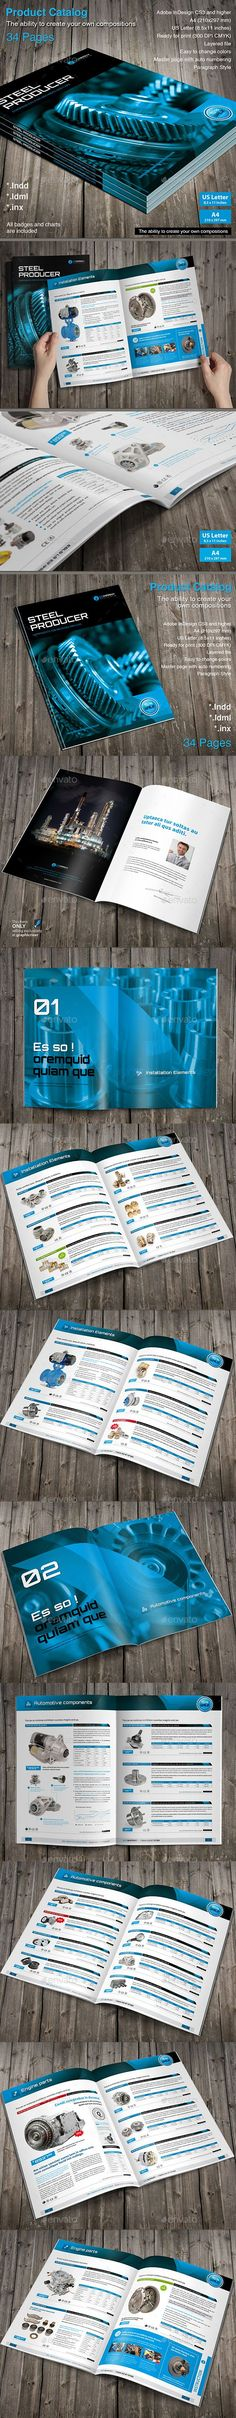 Product Catalog Template InDesign INDD #design Download: http://graphicriver.net/item/product-catalog/14030201?ref=ksioks